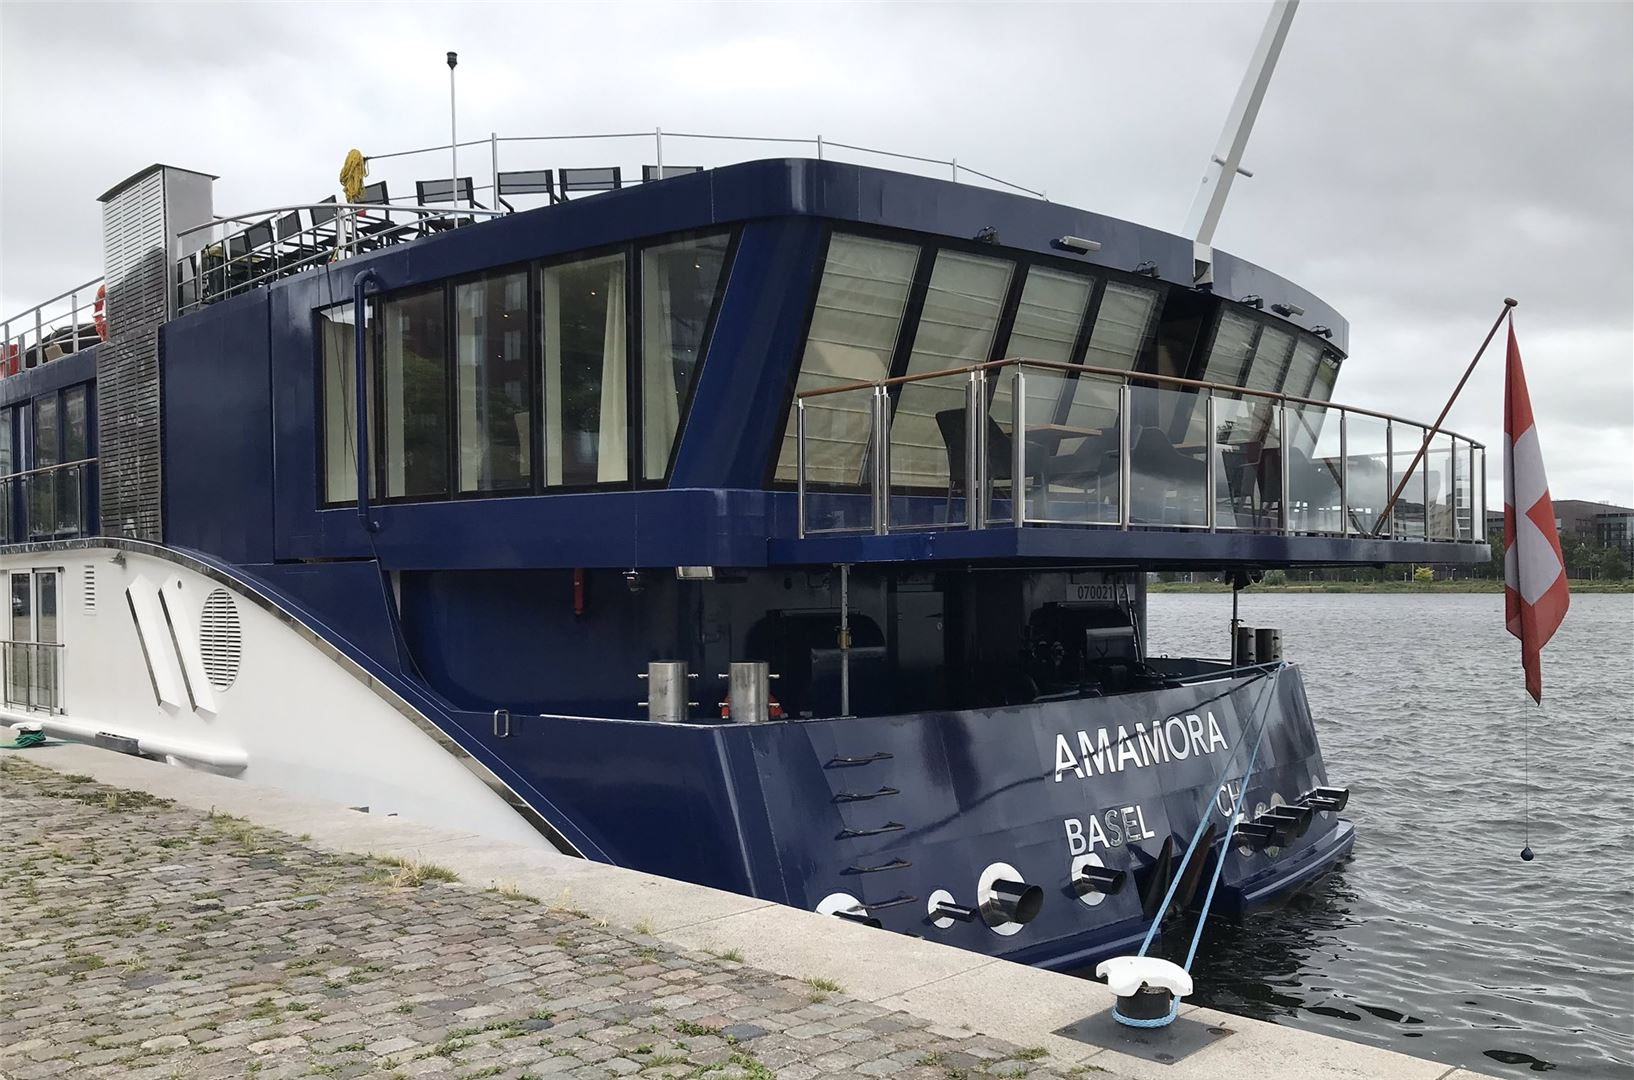 AmaWaterways Welcomes AmaMora Into Fleet